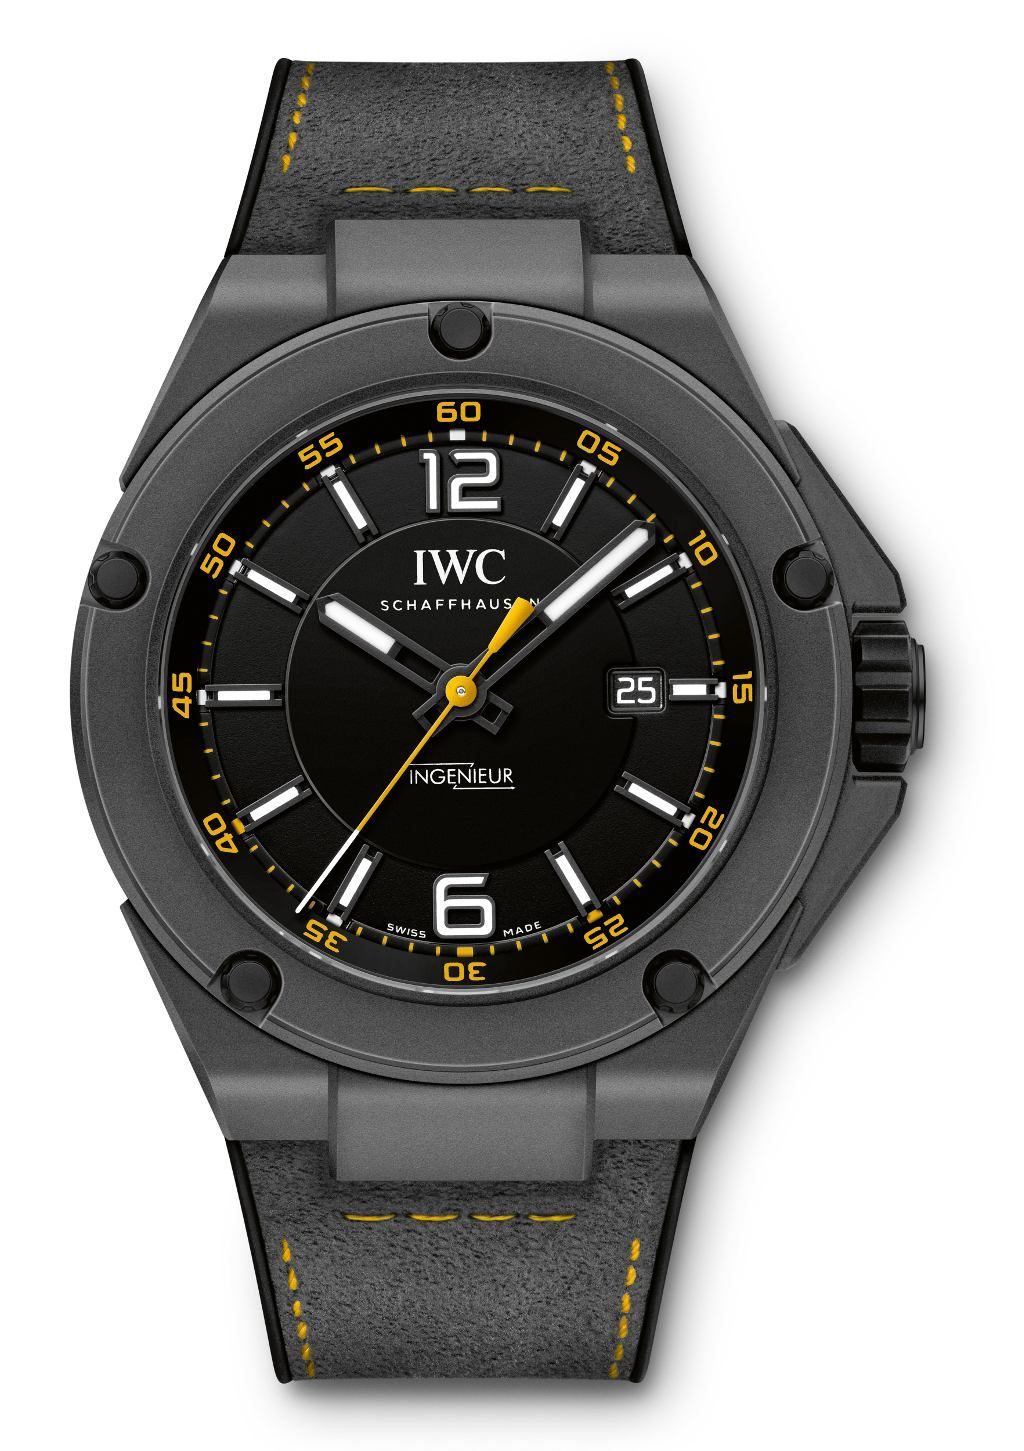 Iwc Ingenieur Automatic Edition Amg Gt Via Watchville Iwc Watches Iwc Latest Watches